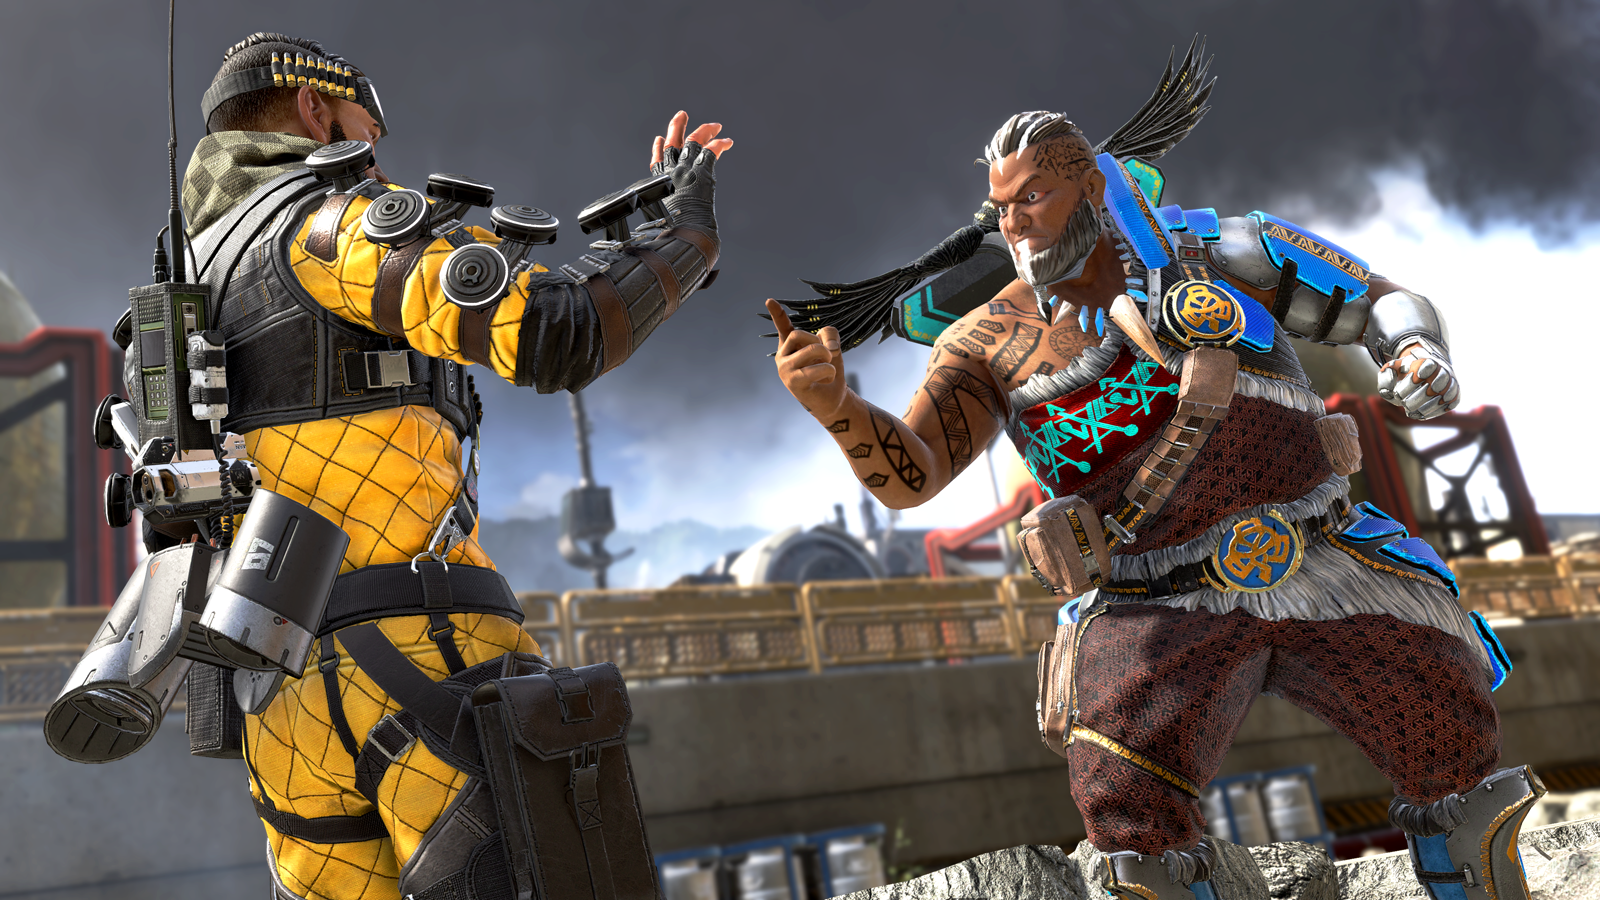 Respawn reverses course after Apex Legends loot box controversy